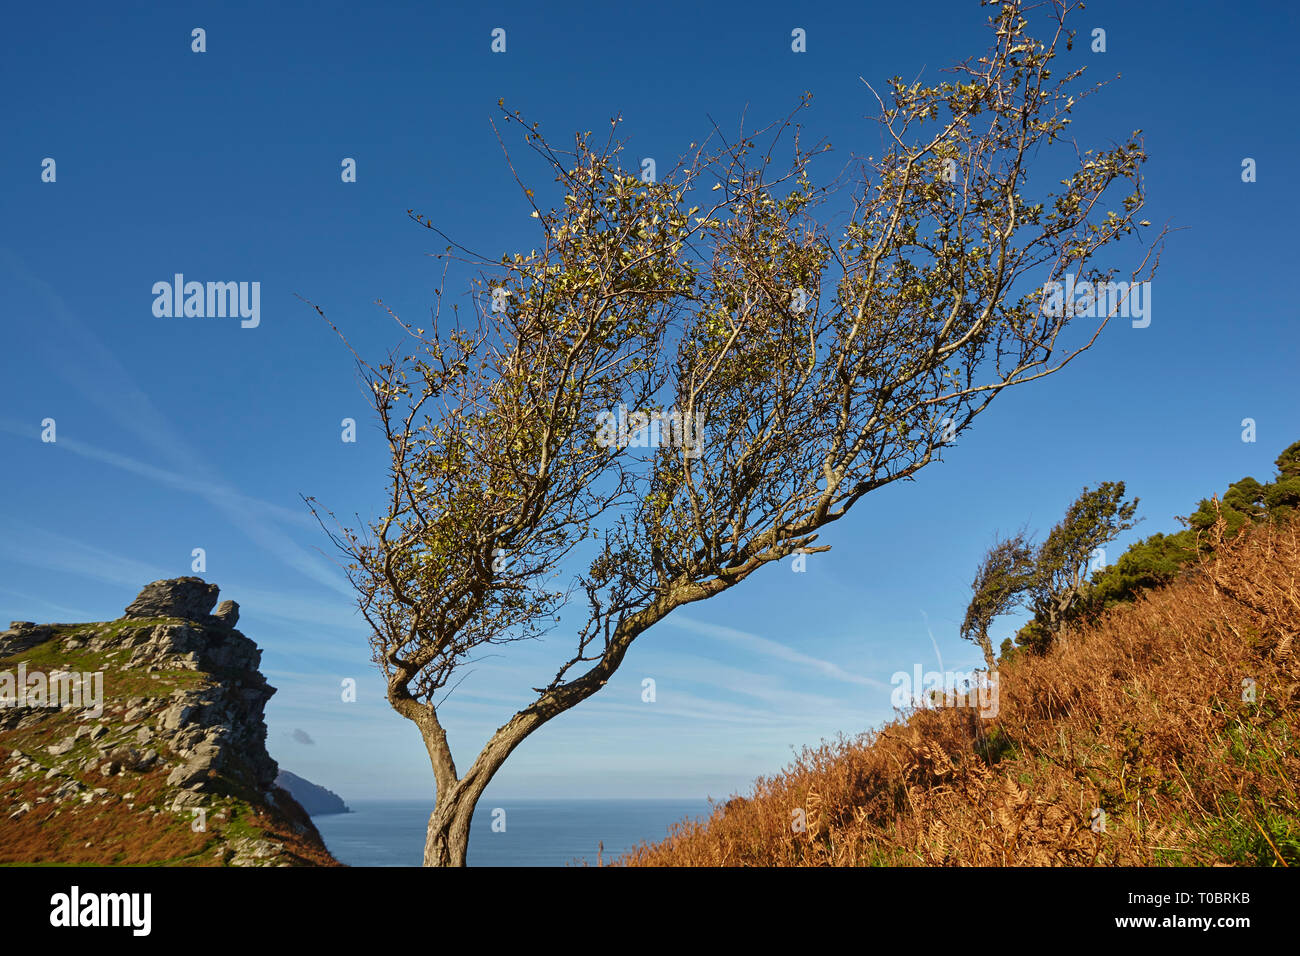 A wind-gnarled hawthorn tree on the coast, in the Valley of Rocks, near Lynton, in Exmoor National Park, Devon, Great Britain. - Stock Image